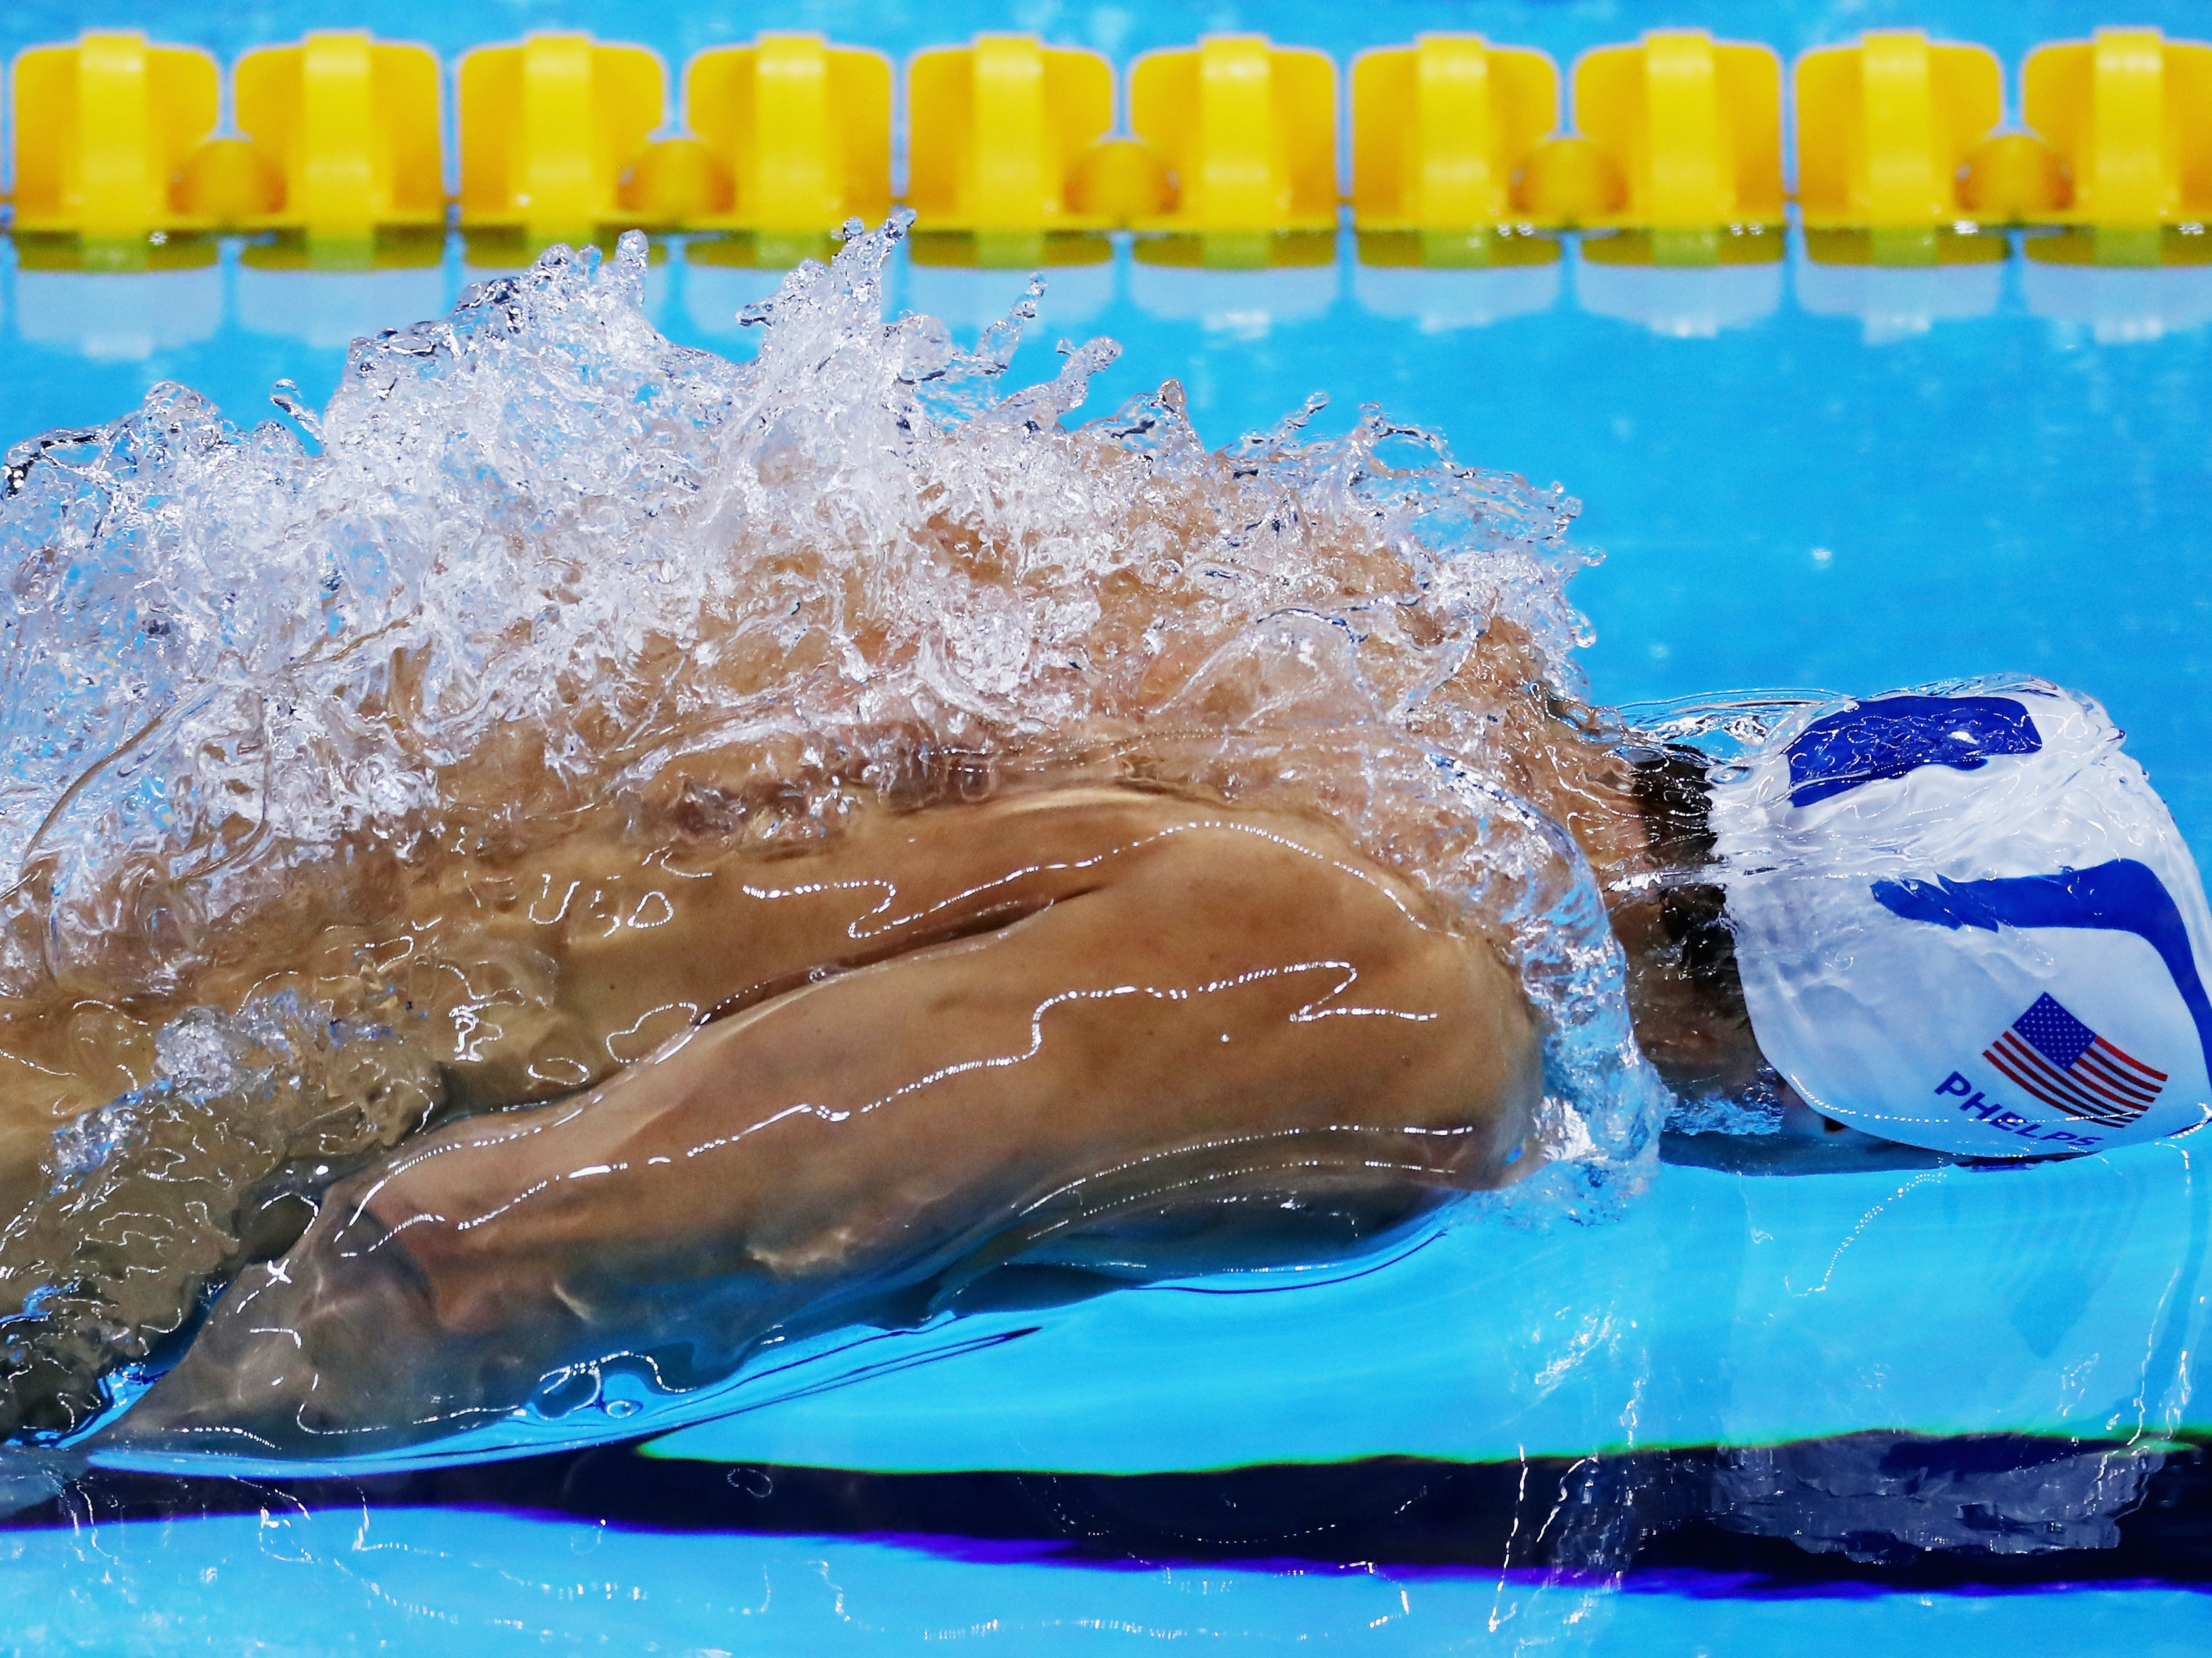 RIO DE JANEIRO, BRAZIL - AUGUST 11:  : Michael Phelps of the United States competes Men's 100m Butterfly heat on Day 6 of the Rio 2016 Olympic Games at the Olympic Aquatics Stadium on August 11, 2016 in Rio de Janeiro, Brazil.  (Photo by Al Bello/Getty Images)